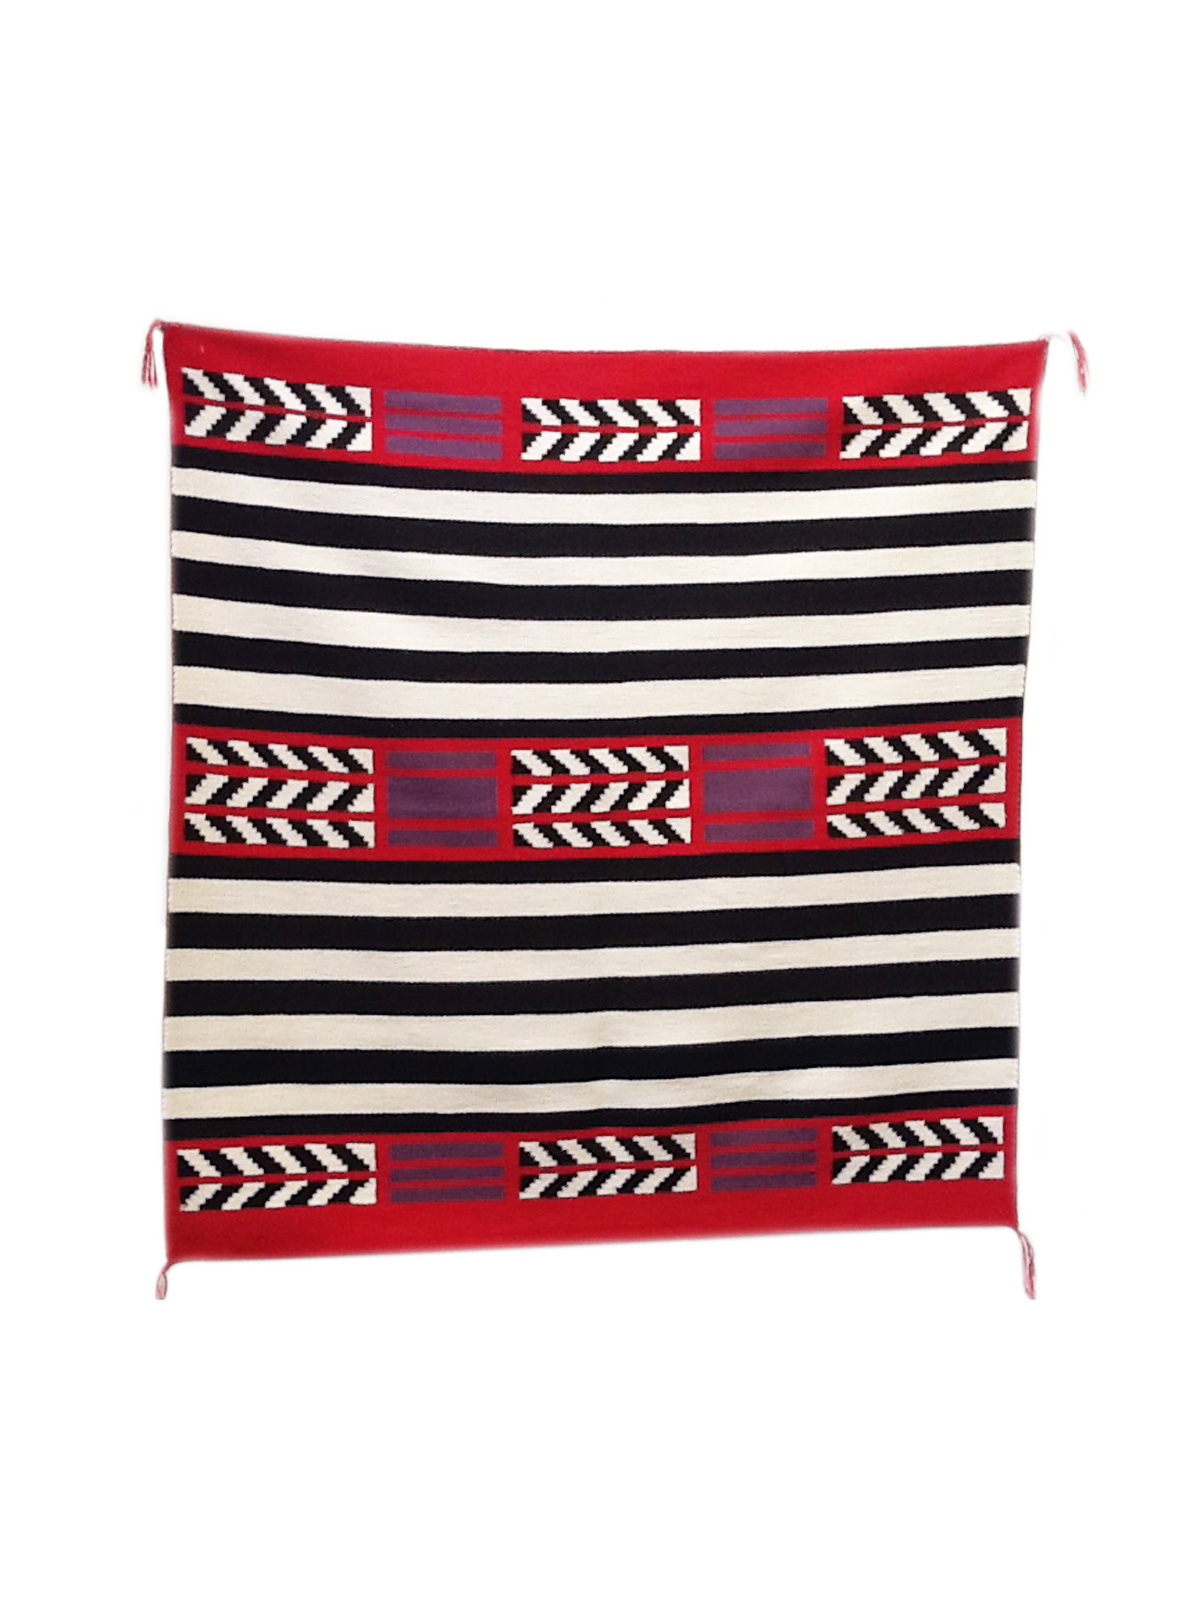 Woman's Chief's Blanket